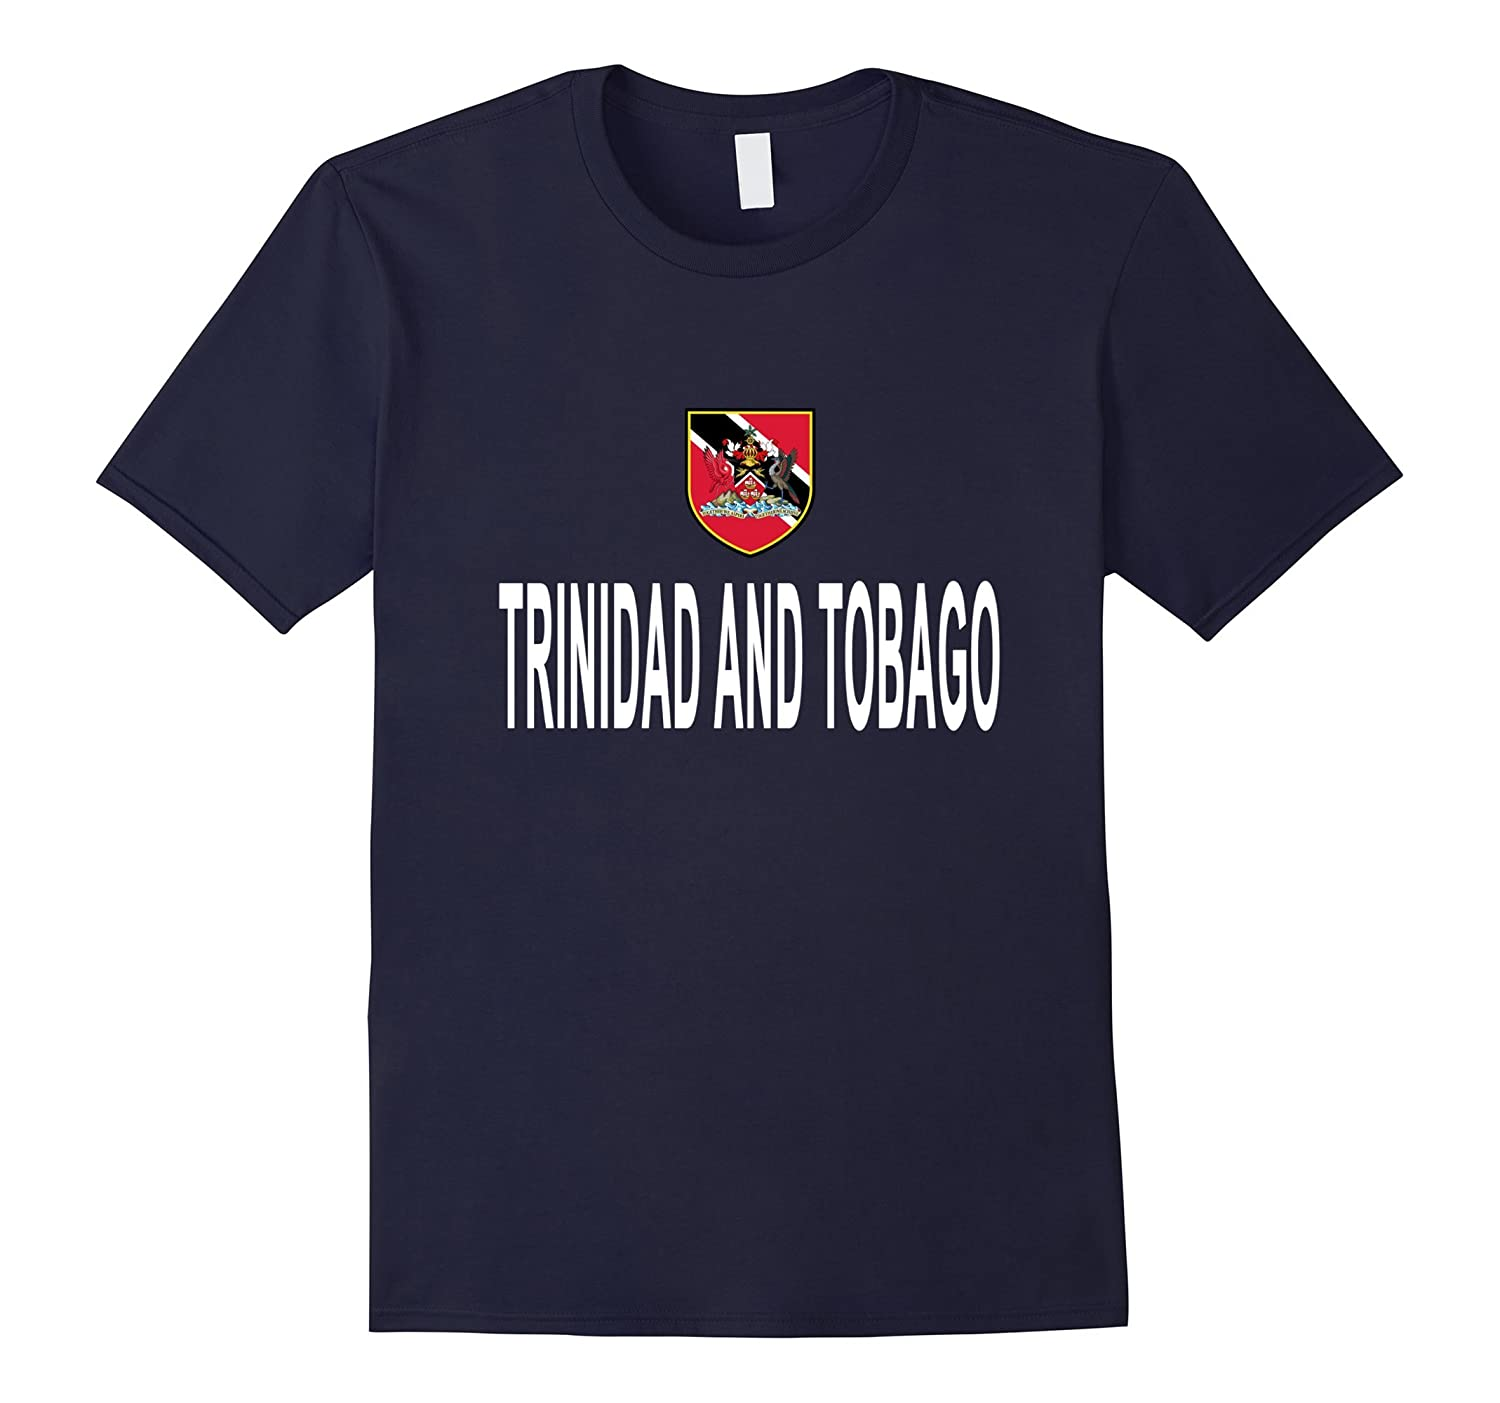 Trinidad and Tobago Soccer T-Shirt - Football Jersey 2017-RT